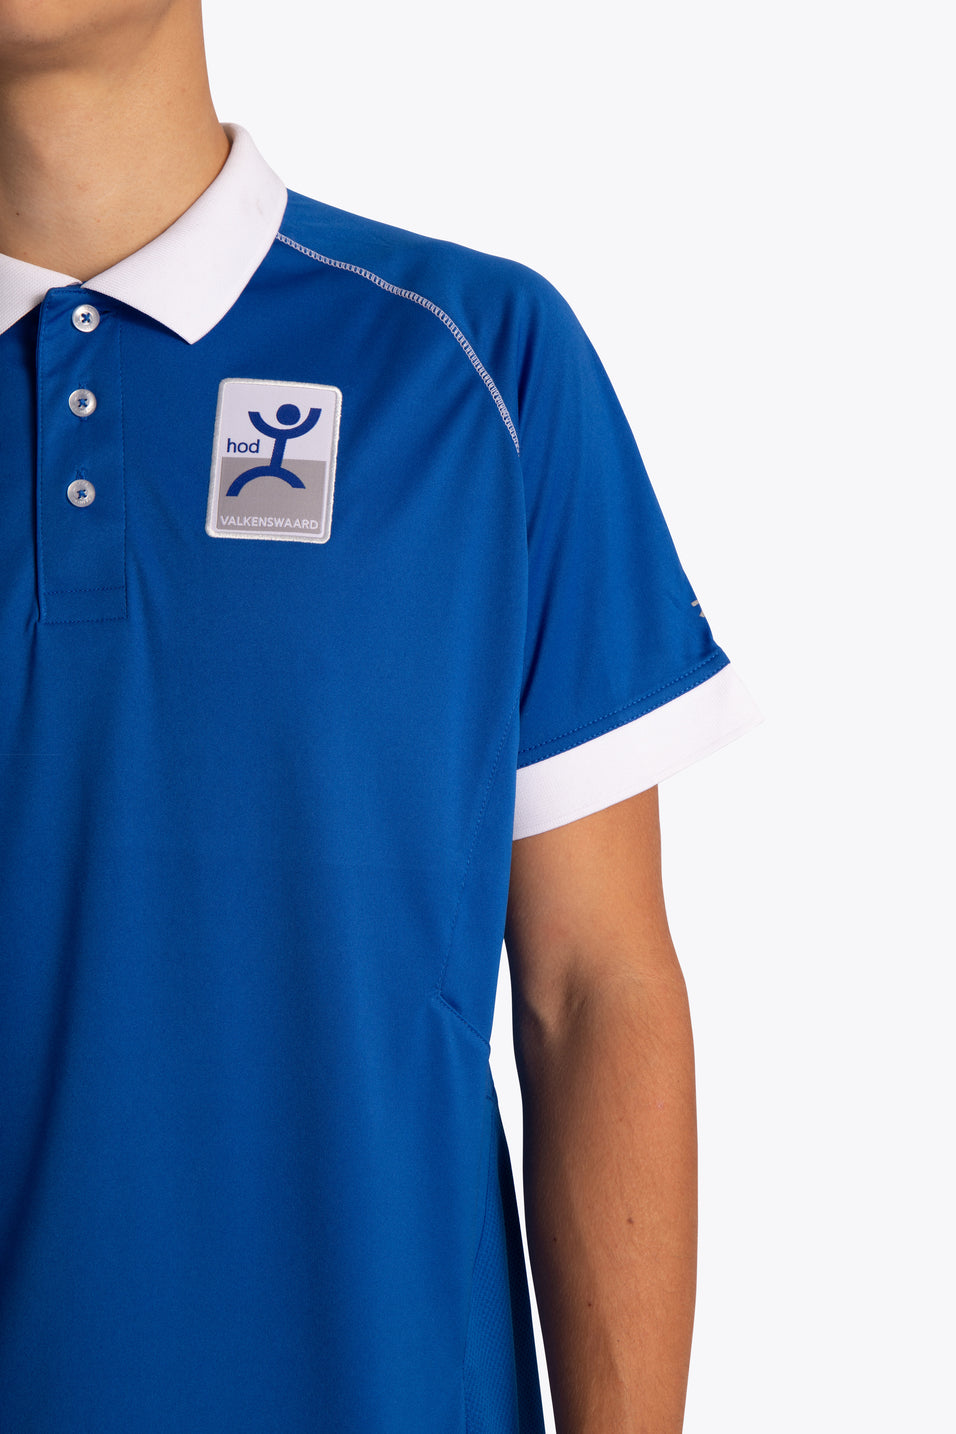 HOD Men Polo Jersey - Royal Blue